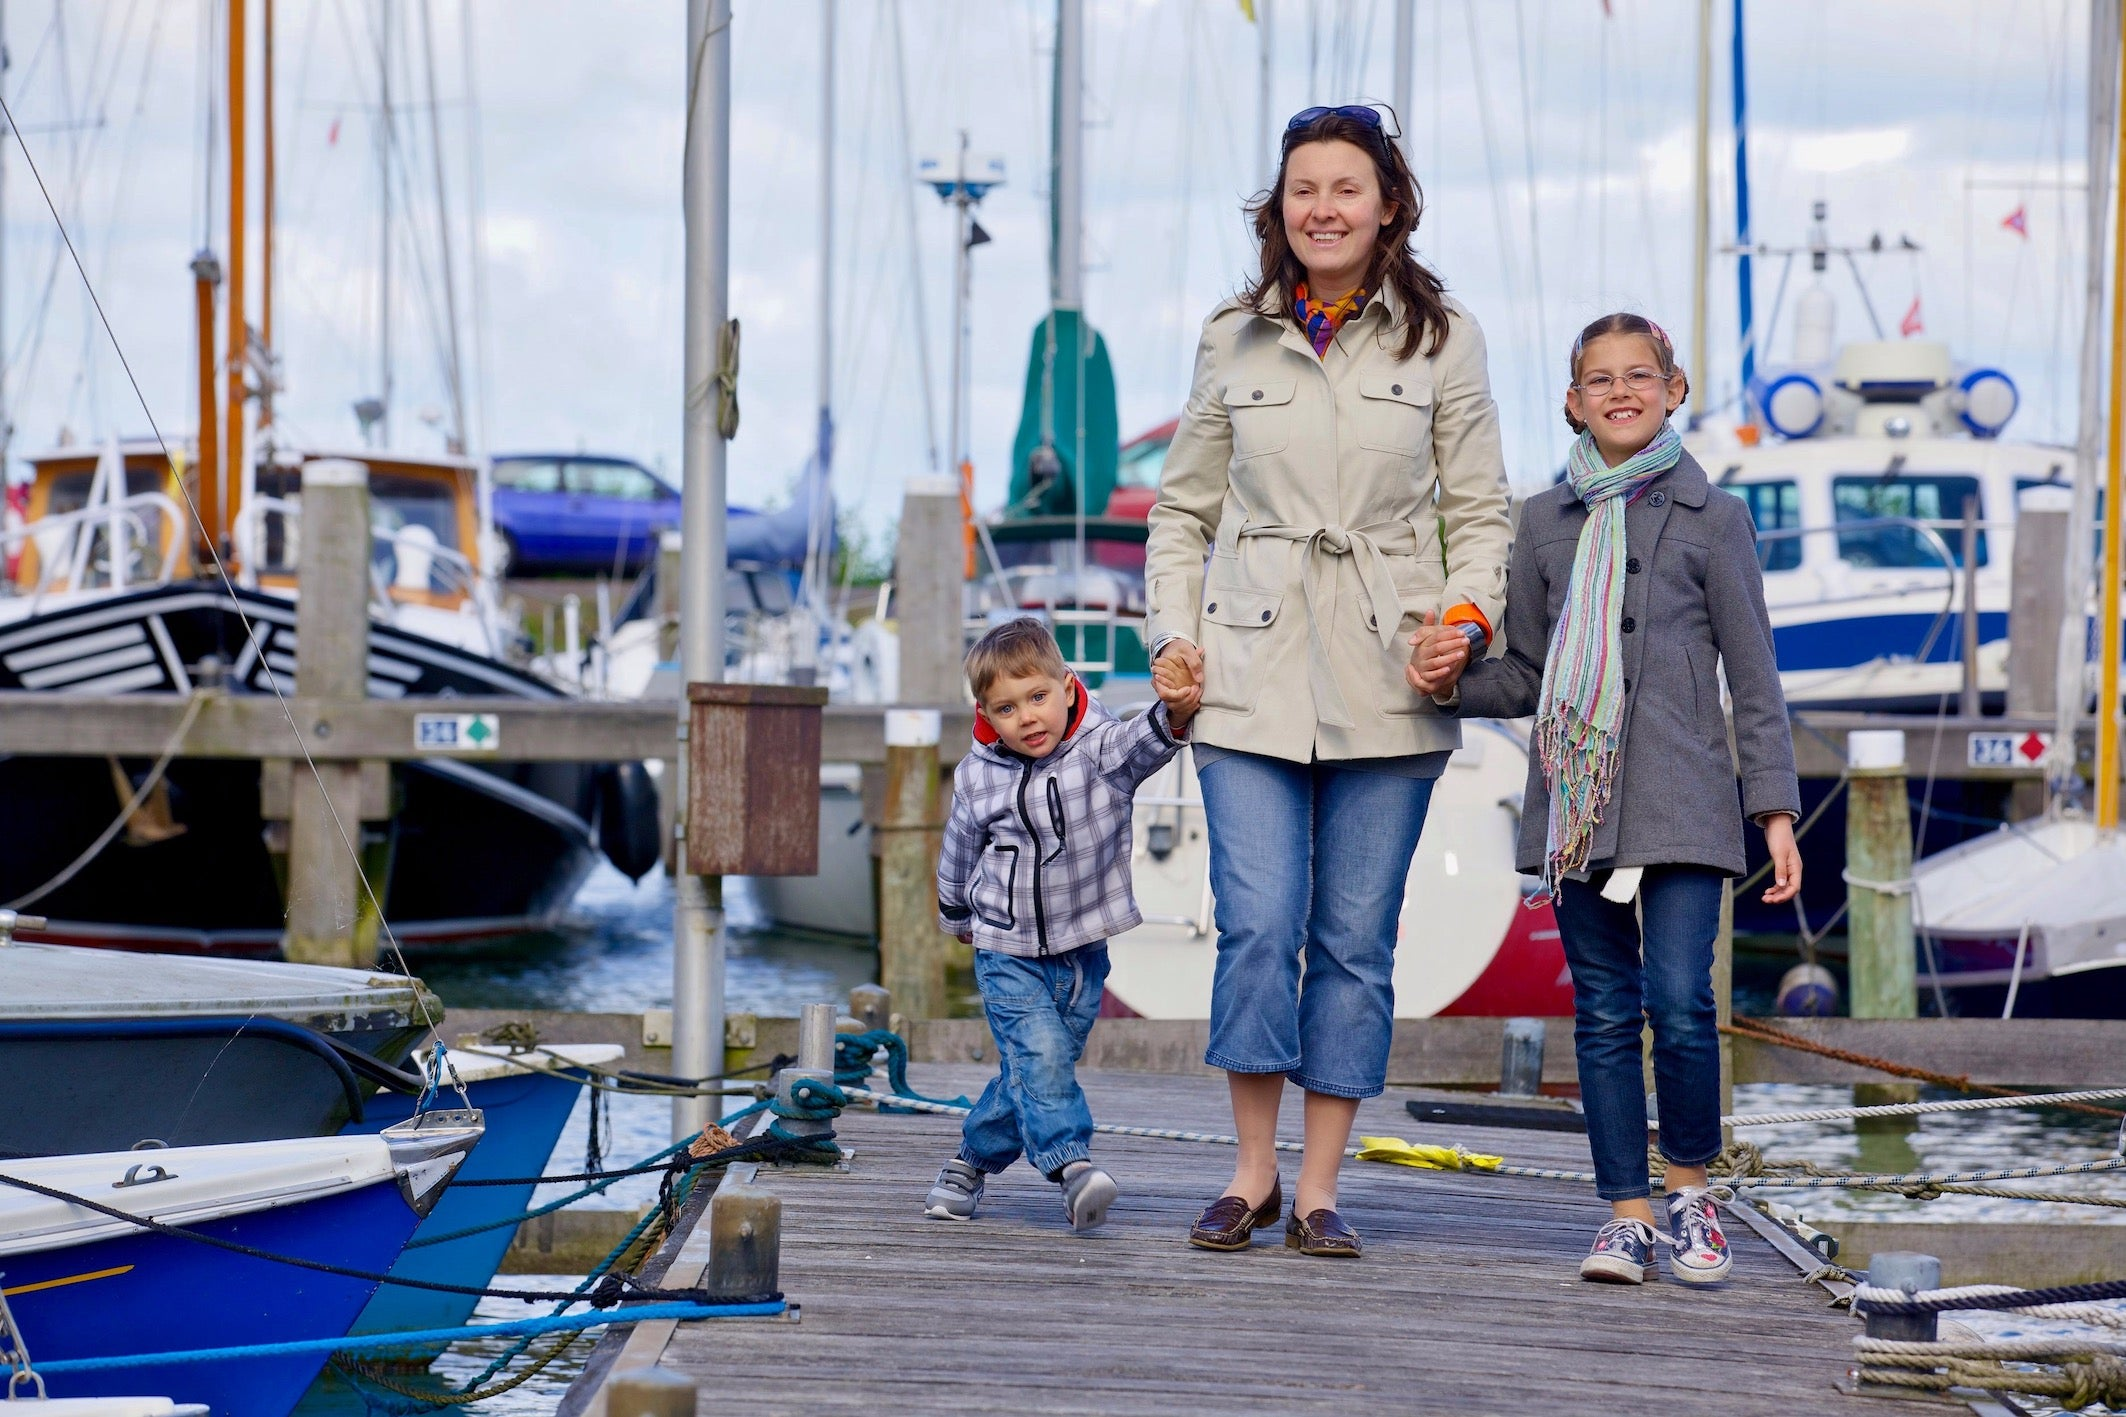 a beautiful image of a woman with her two children in the harbor of Volendam during corona crisis in holland